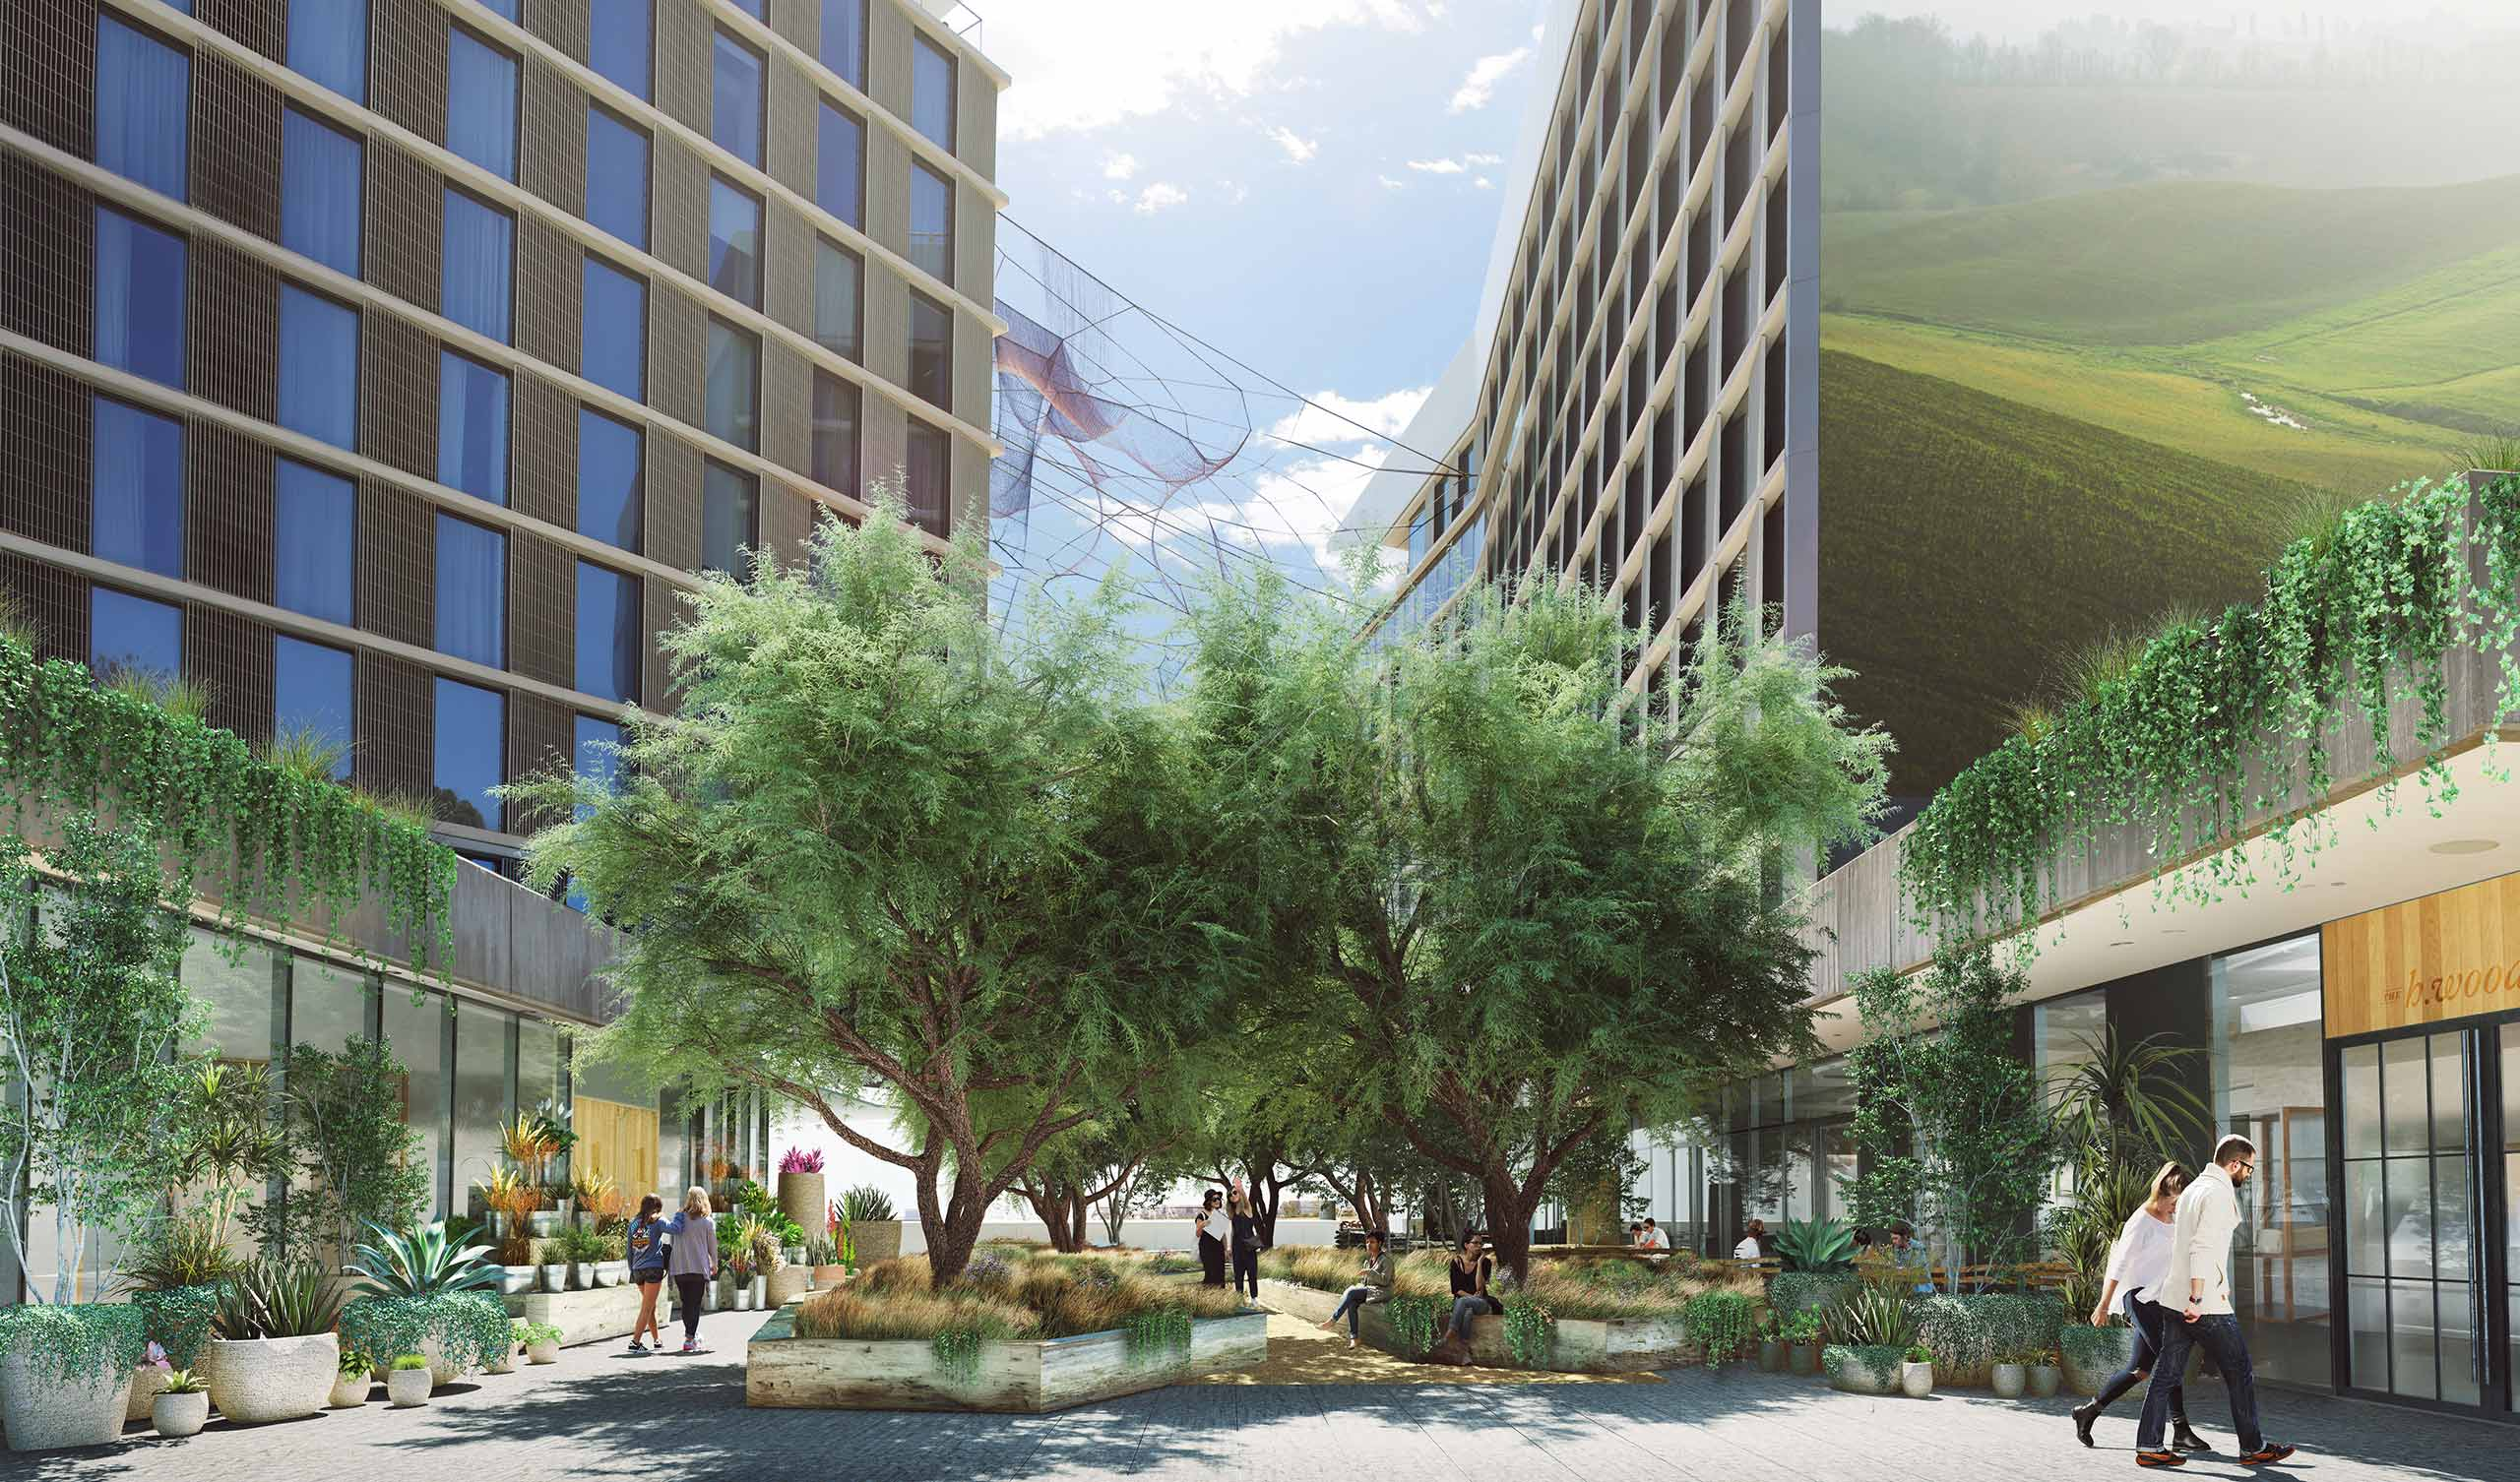 1 Hotel Design concept Courtyard filled with trees and people